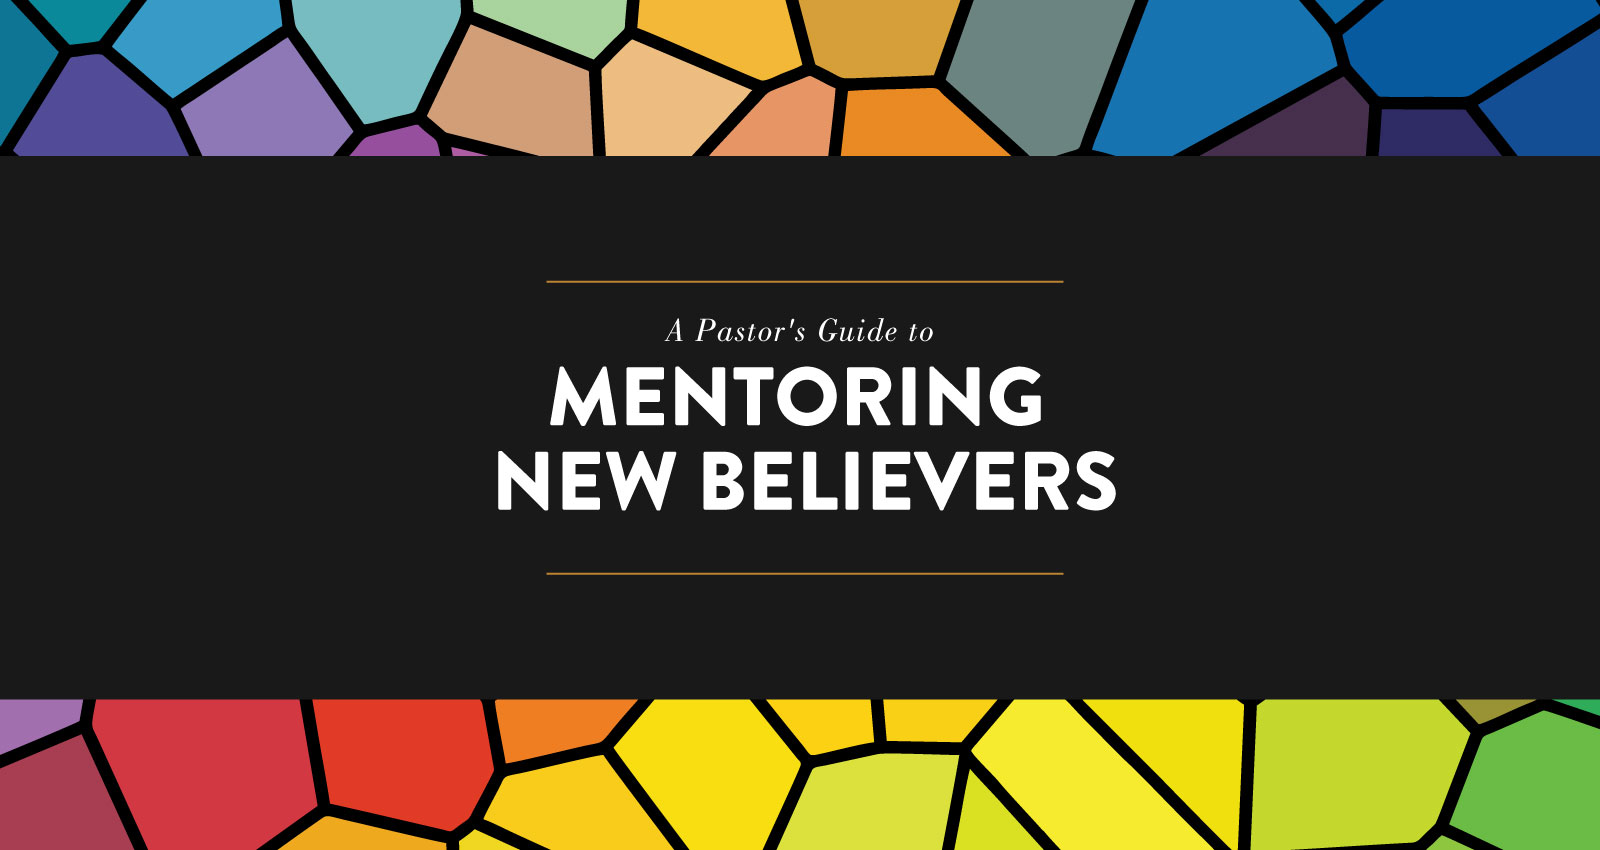 A Pastor's Guide to Mentoring New Believers